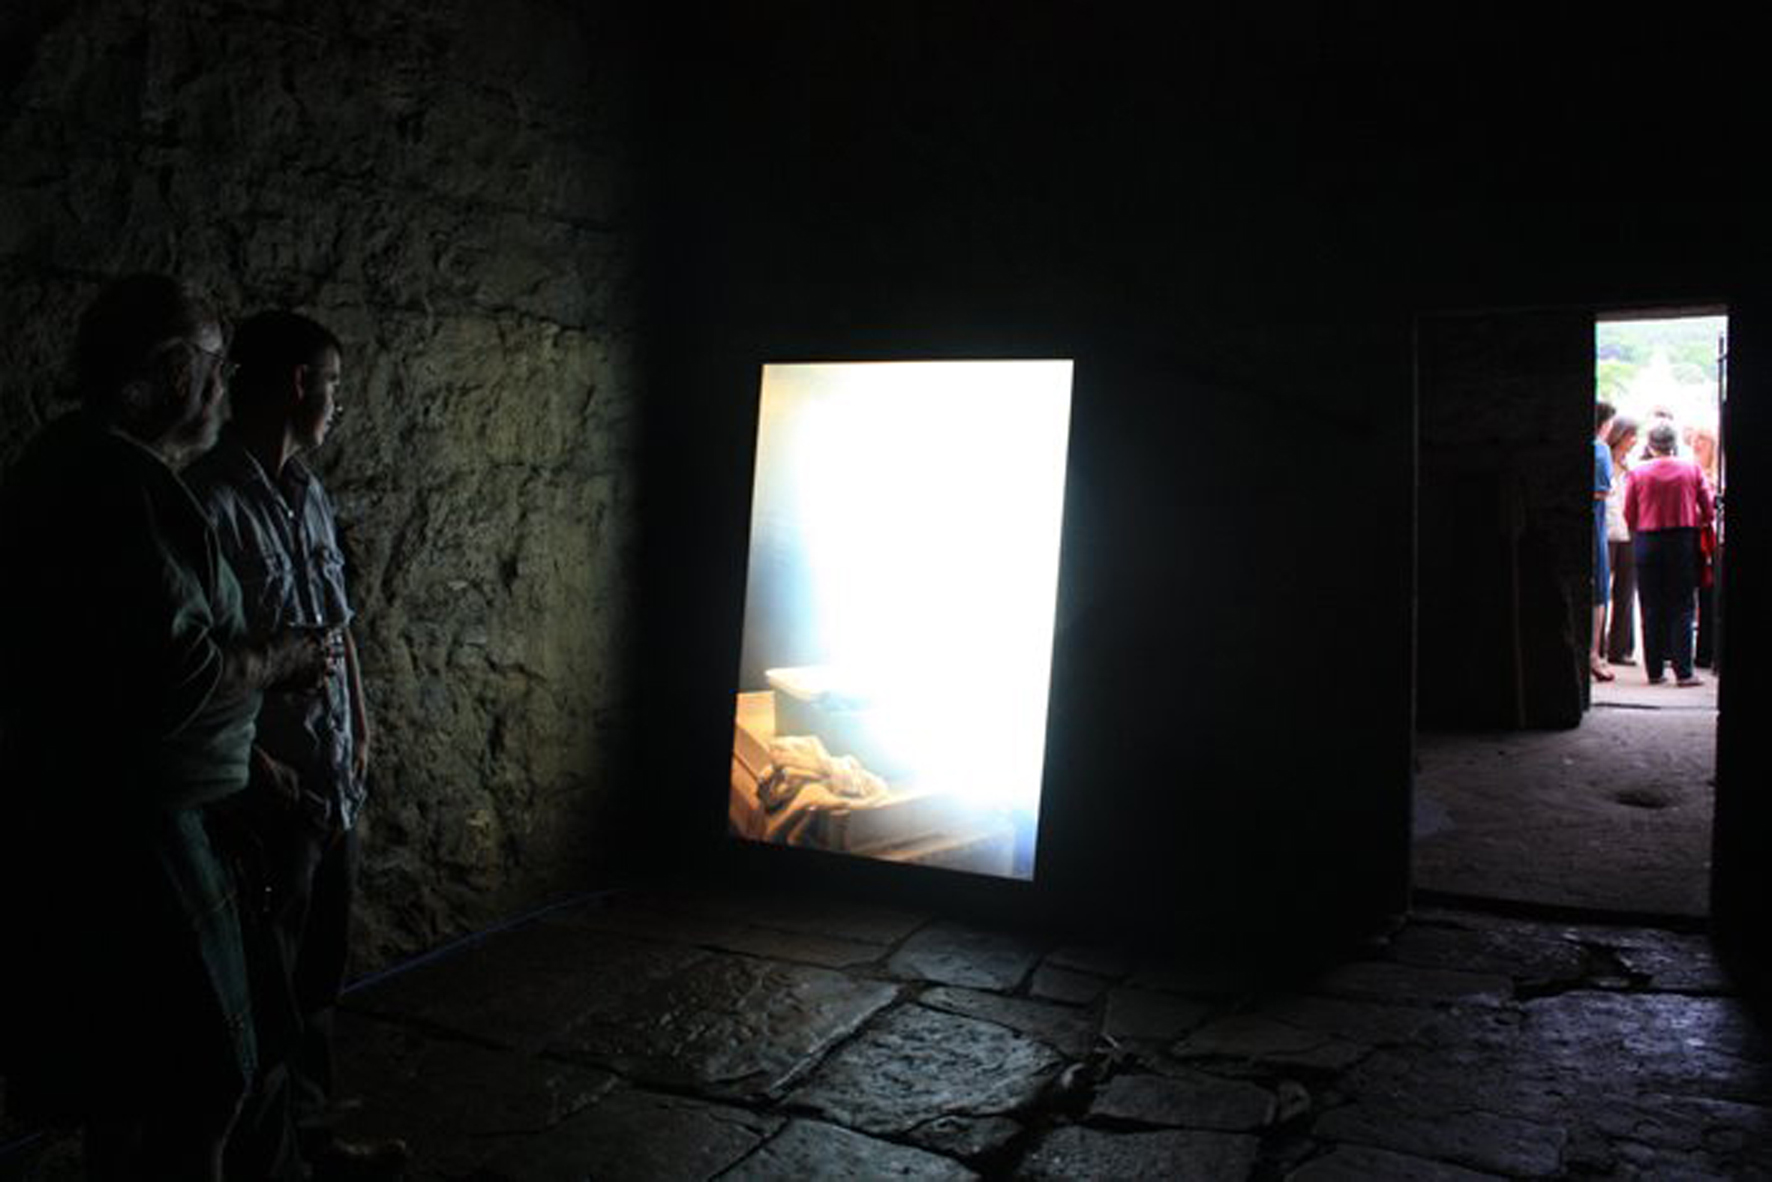 'Sandy' installed in the Ice house. Photo Ruth McDougall